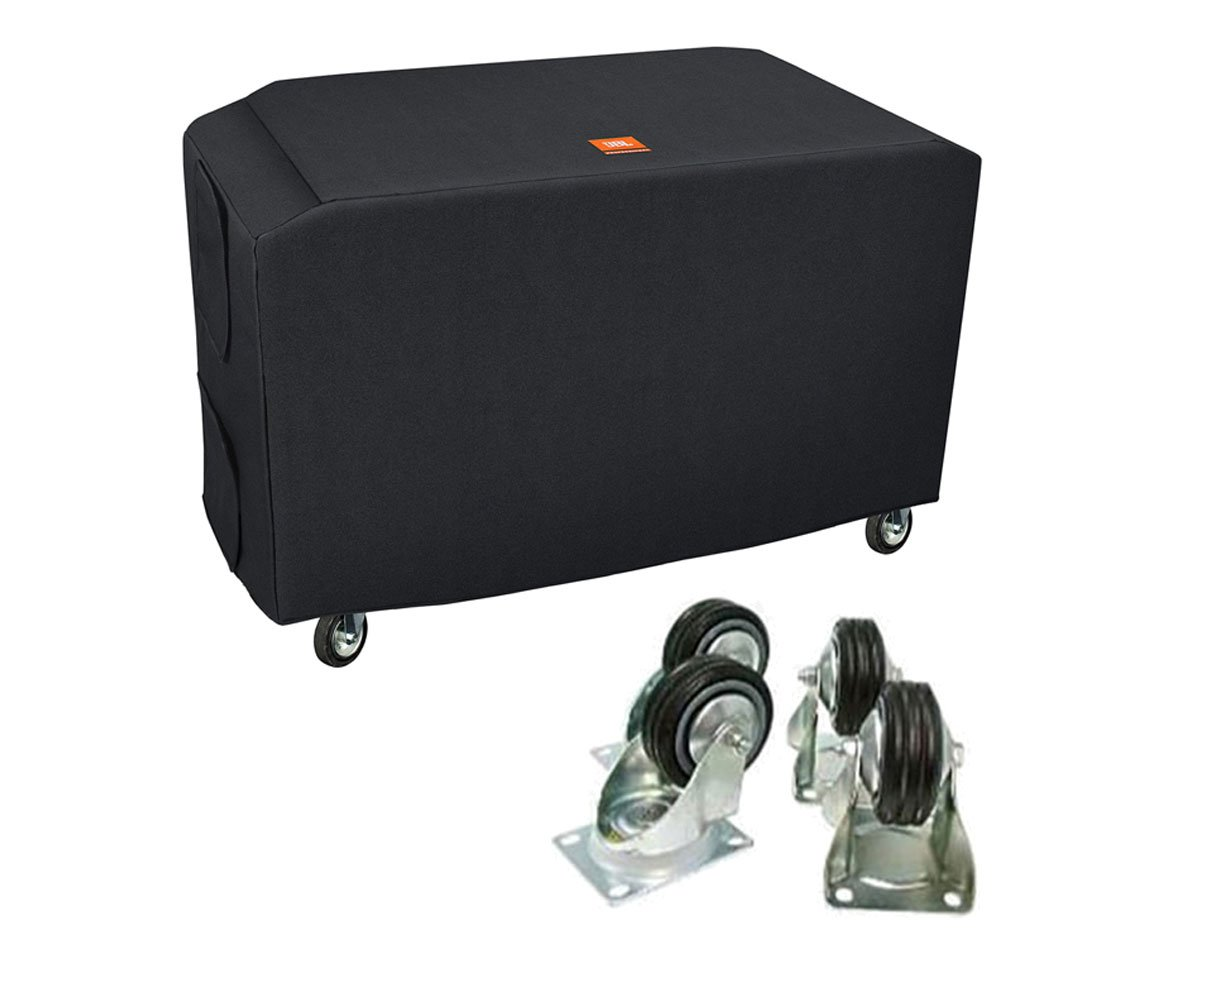 JBL Bags SRX828SP-CVR-DLX-WK4 Deluxe Custom Cover + WK-4S Casters Wheels Set